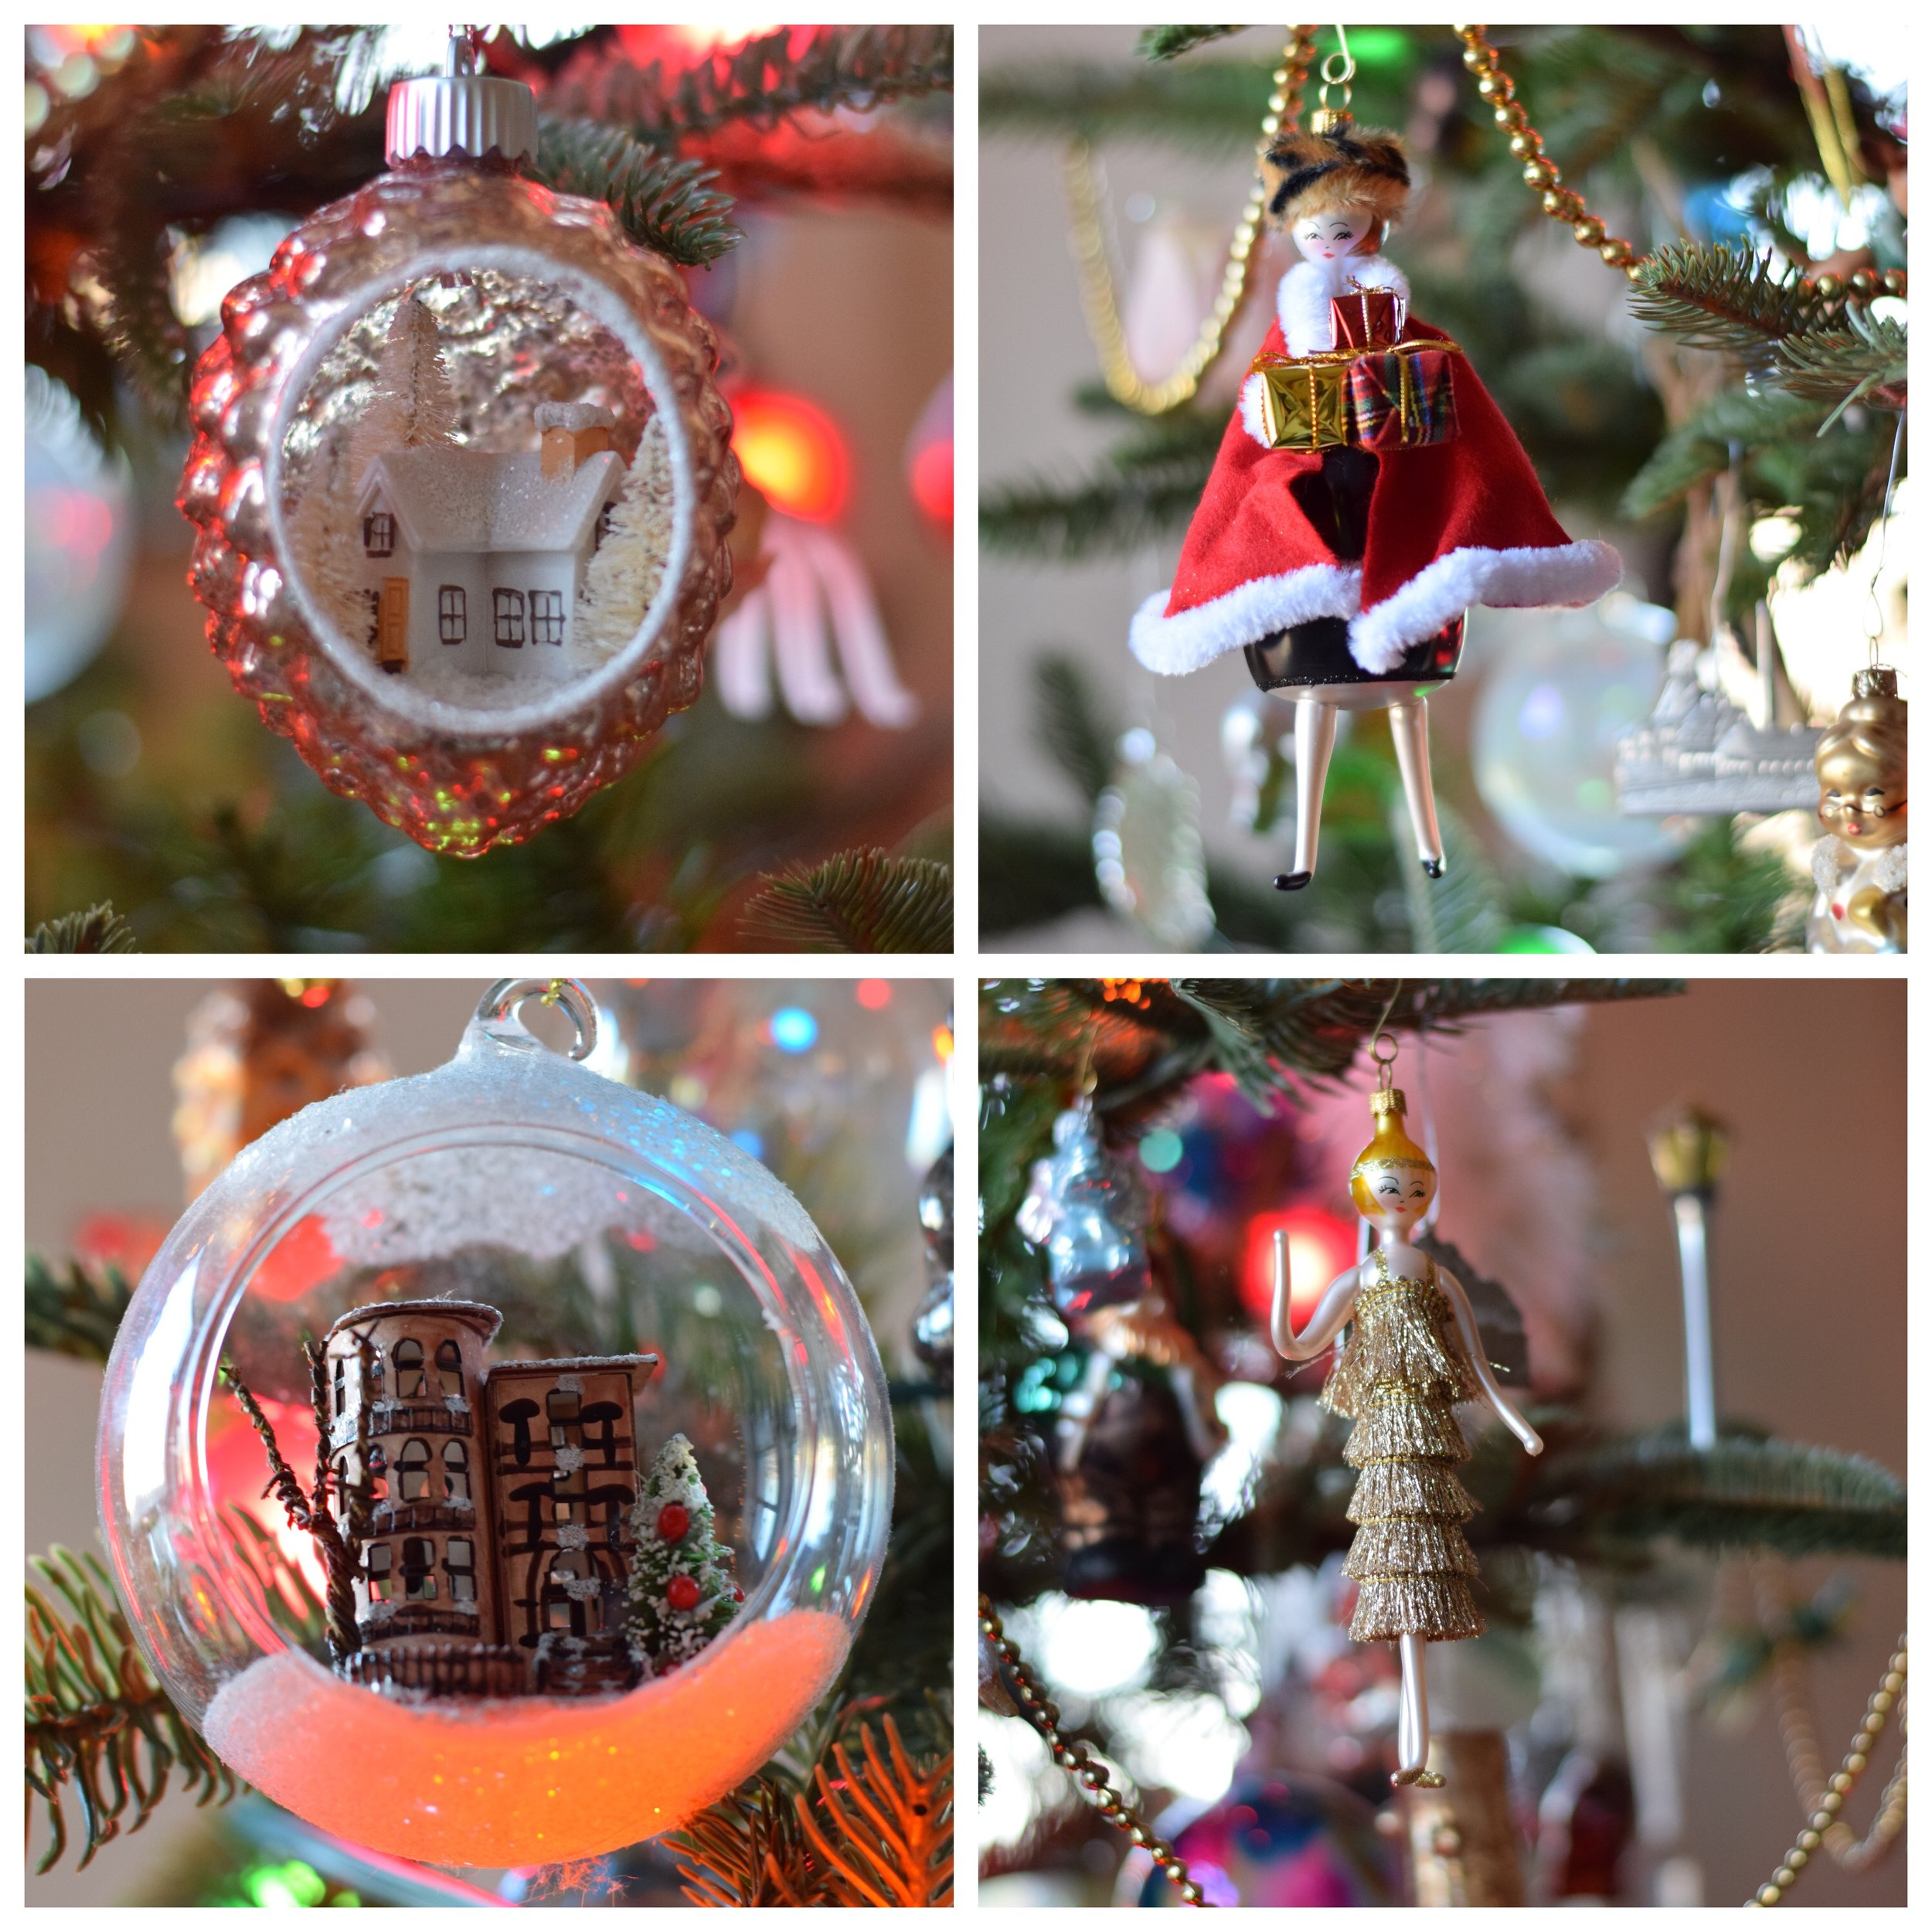 Which one of these ornament is your favorite -winter wonderland house, brownstones, lady in red cap with gifts or lady in flapper? Hard to pick isn't it?